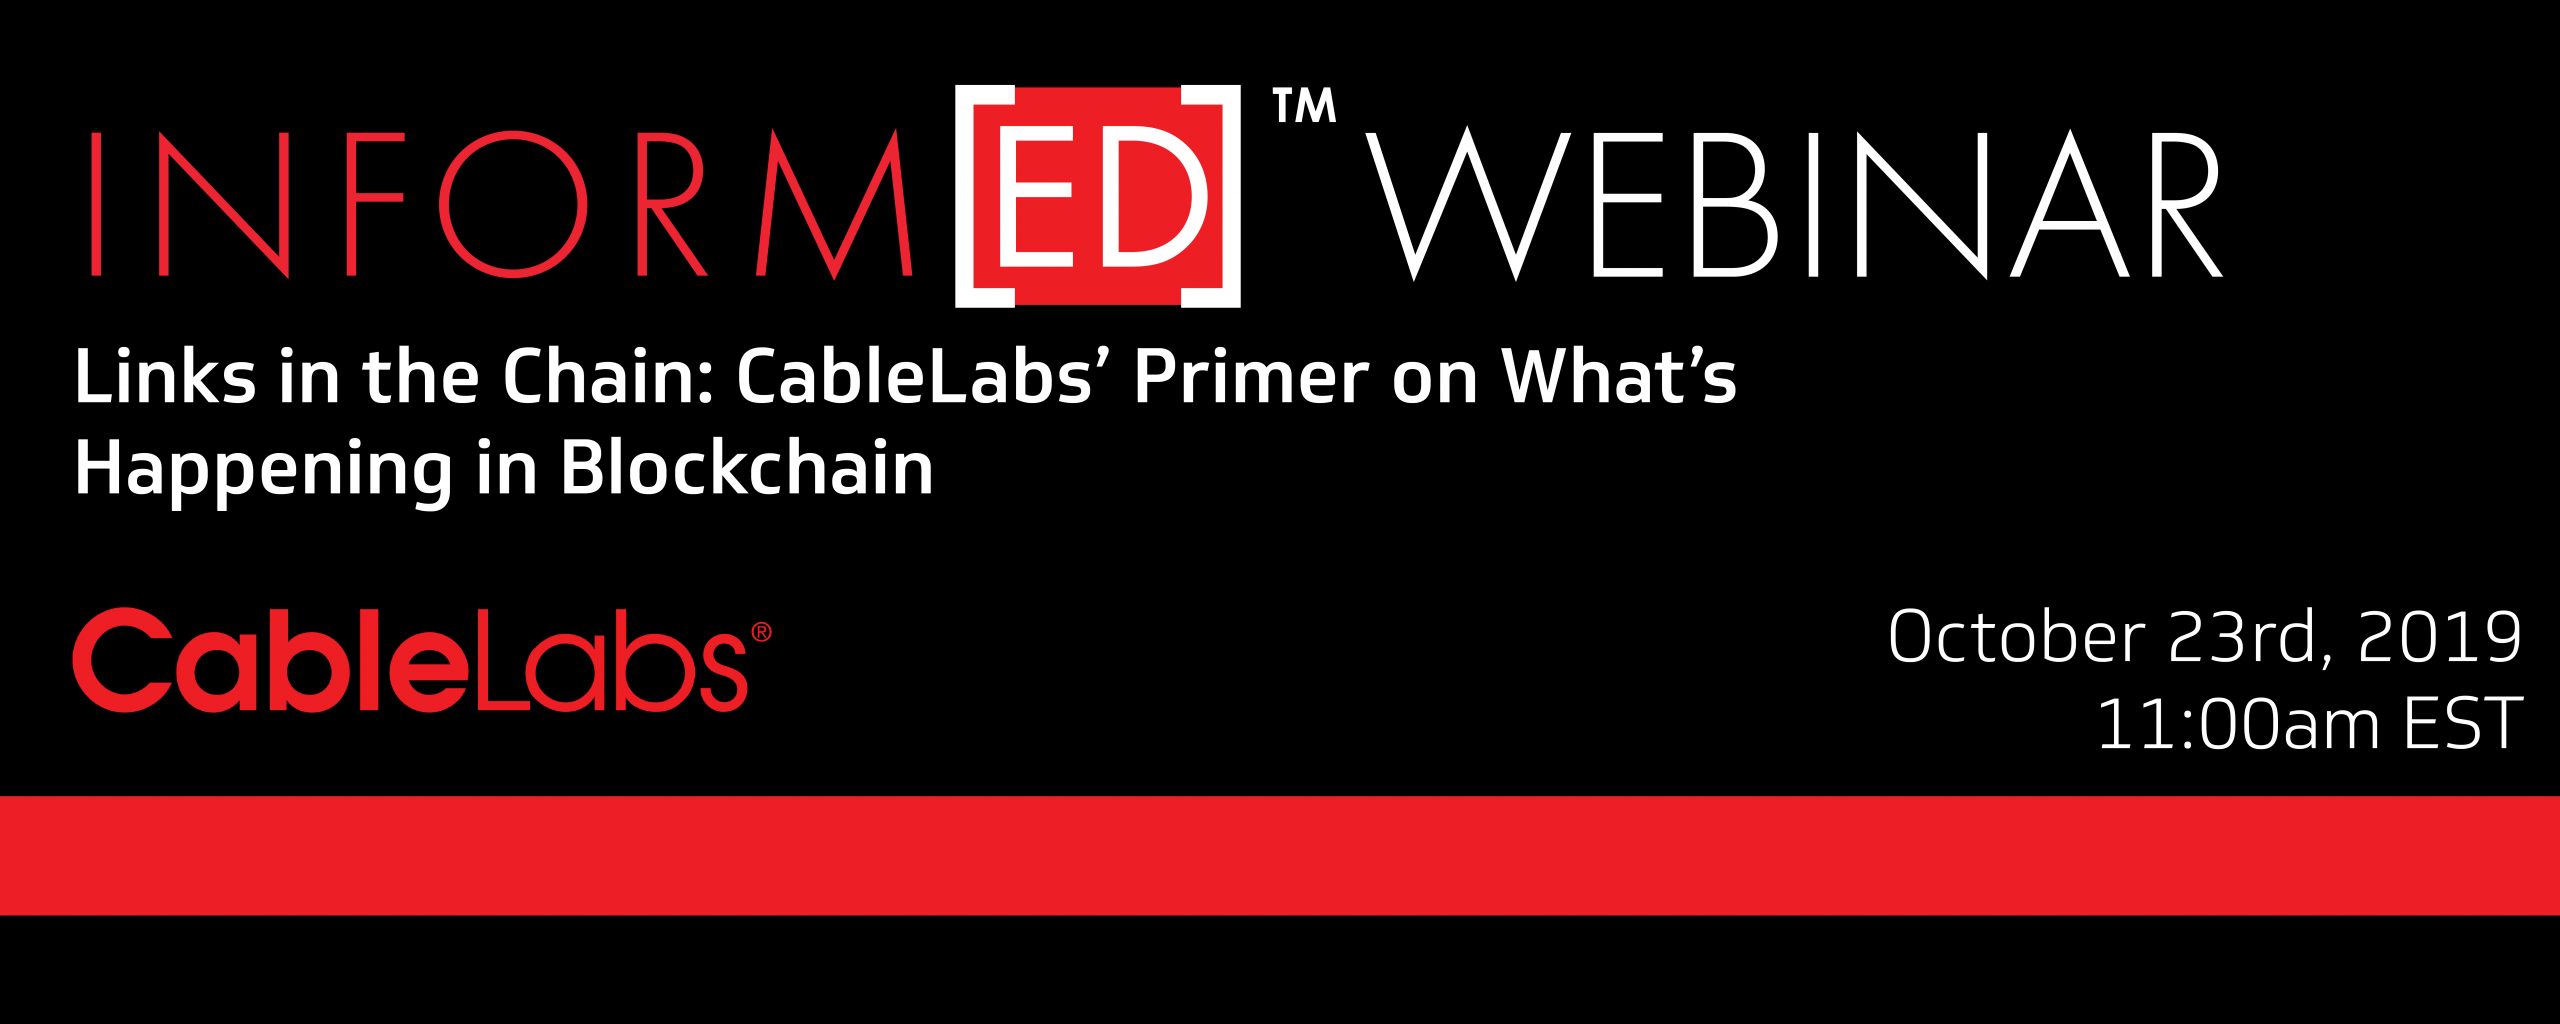 Inform[ED] Webinar: Links in the Chain: CableLabs' Primer on What's Happening in Blockchain